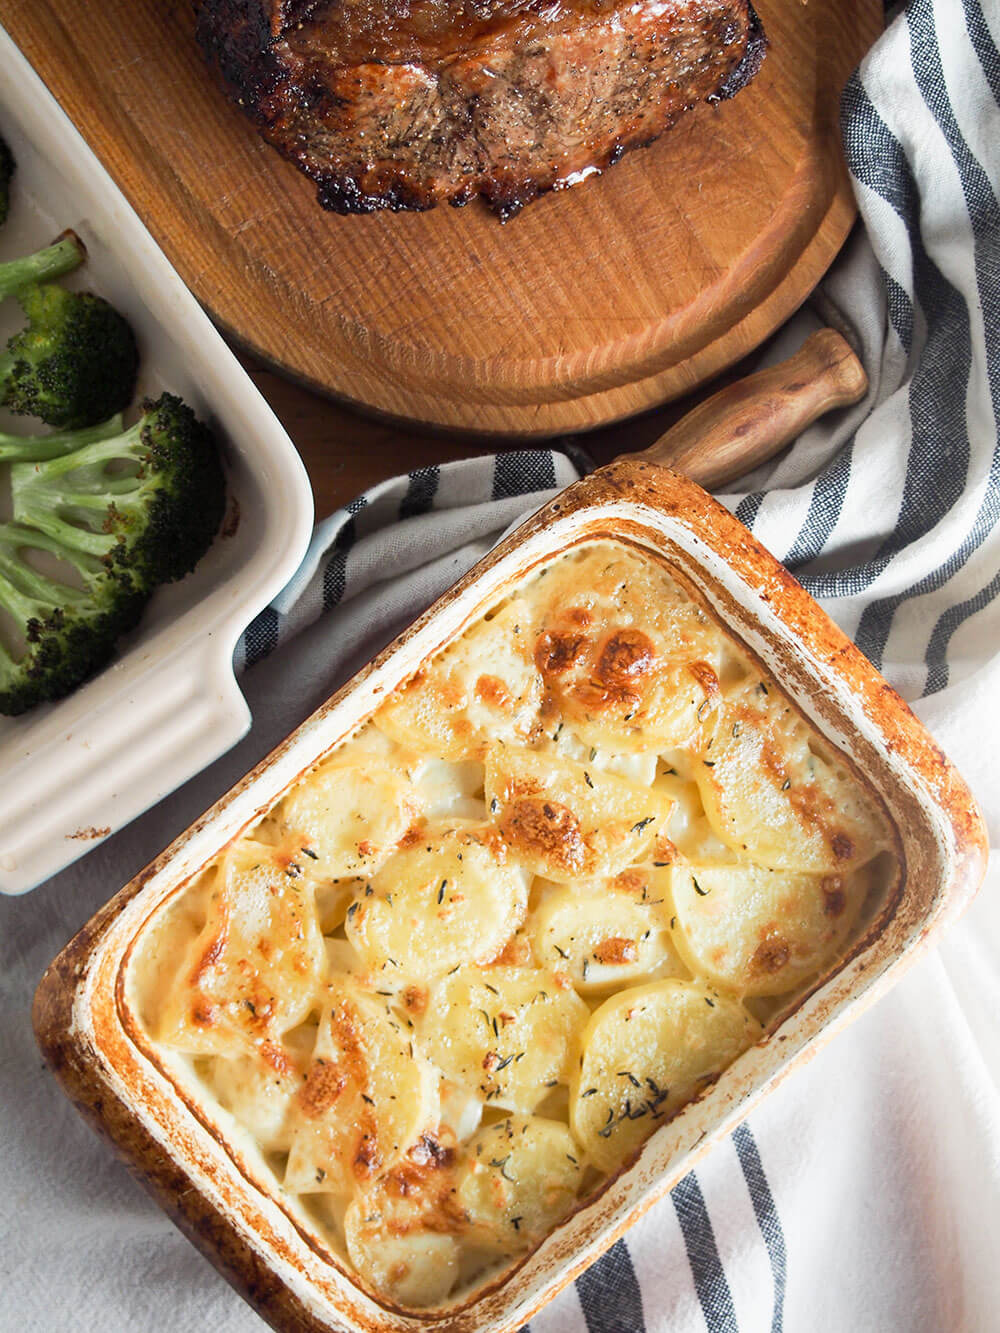 Dauphinoise potatoes served alongside roast beef and broccoli